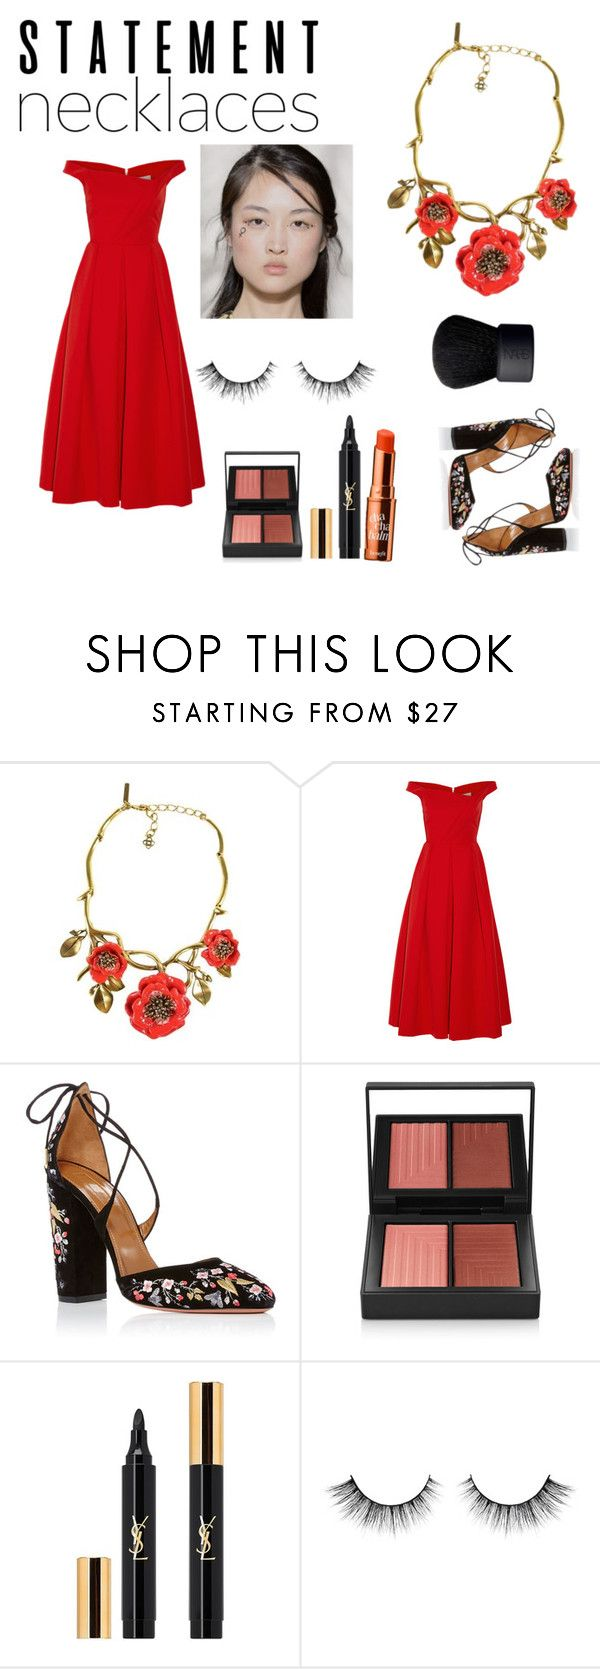 """30 jul"" by floo-carriillo ❤ liked on Polyvore featuring Oscar de la Renta, Preen, Aquazzura, NARS Cosmetics, Yves Saint Laurent and statementnecklaces"